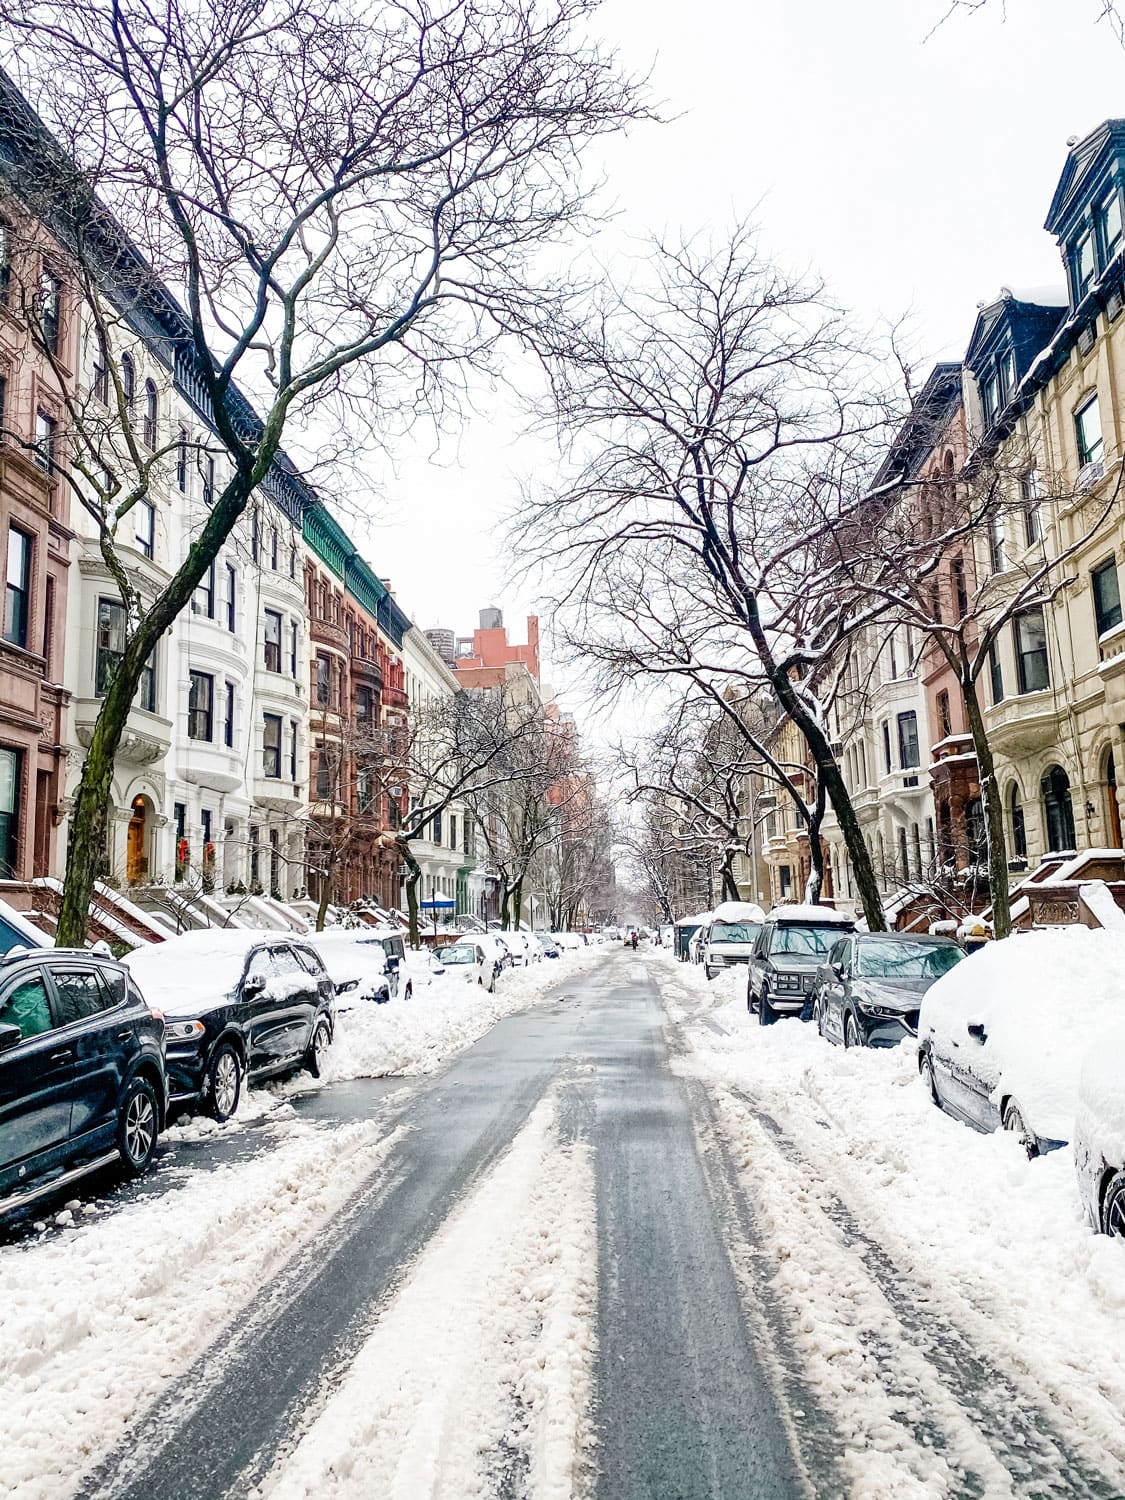 city street in the snow with brownstones